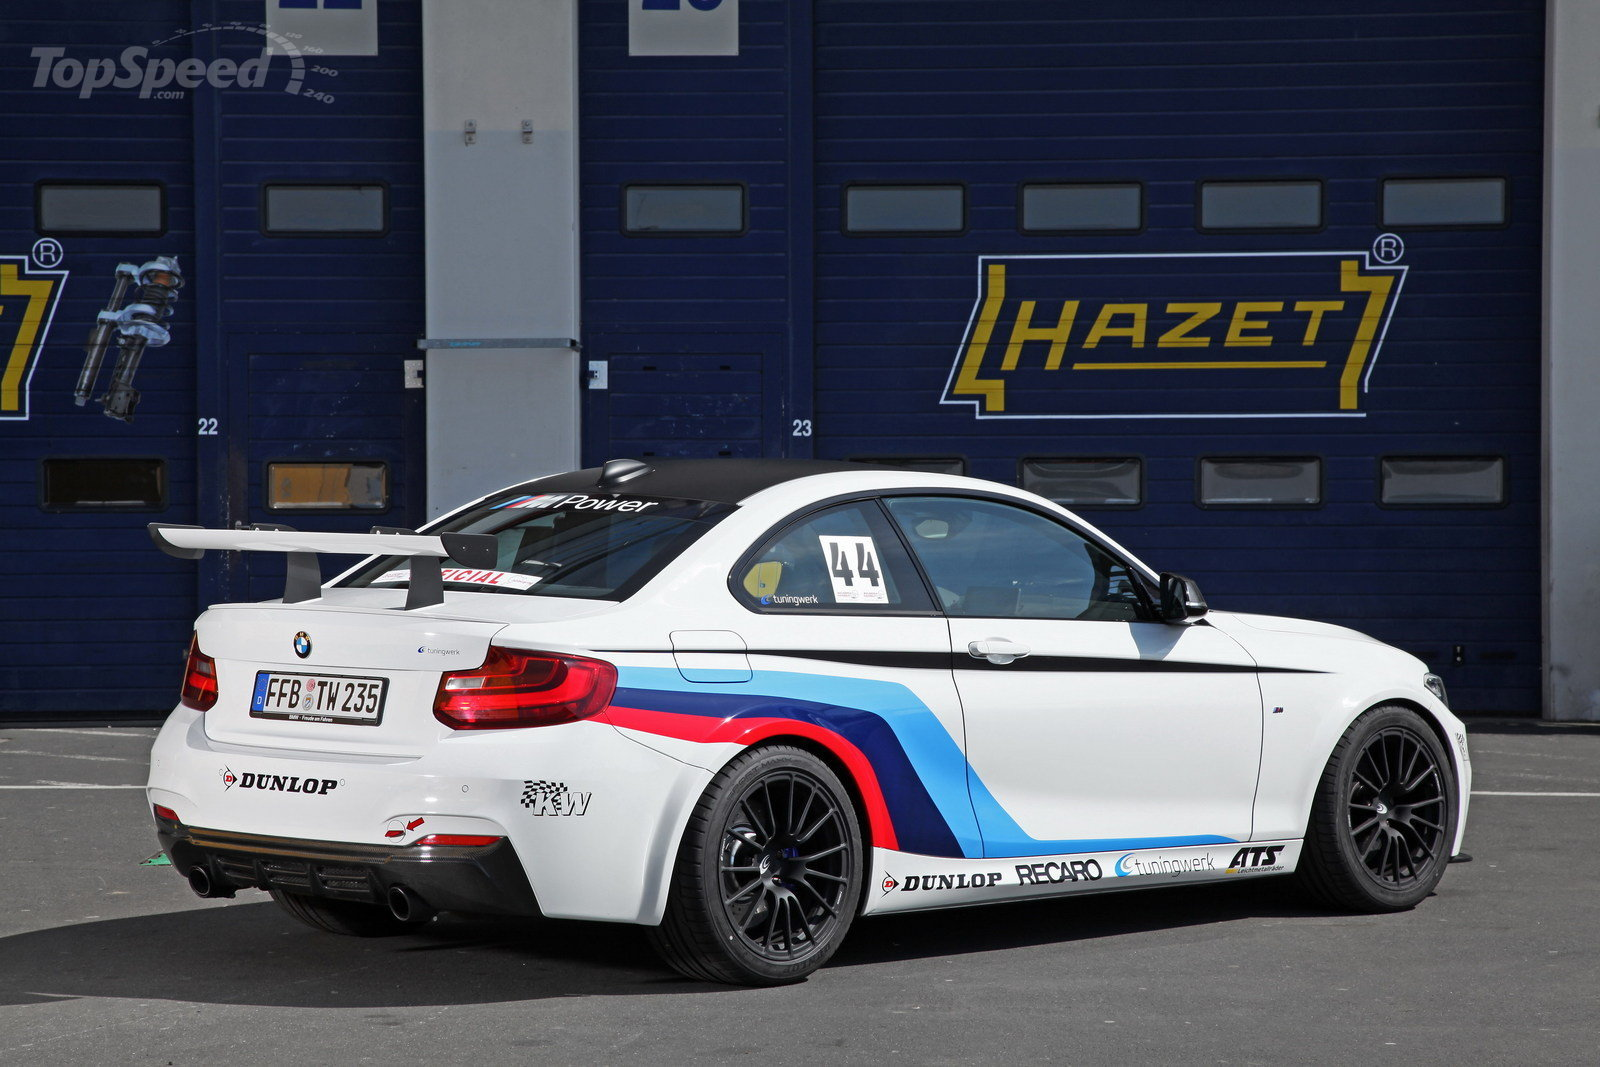 2014-bmw-m235i-by-tuningw-3_1600x0w.jpg